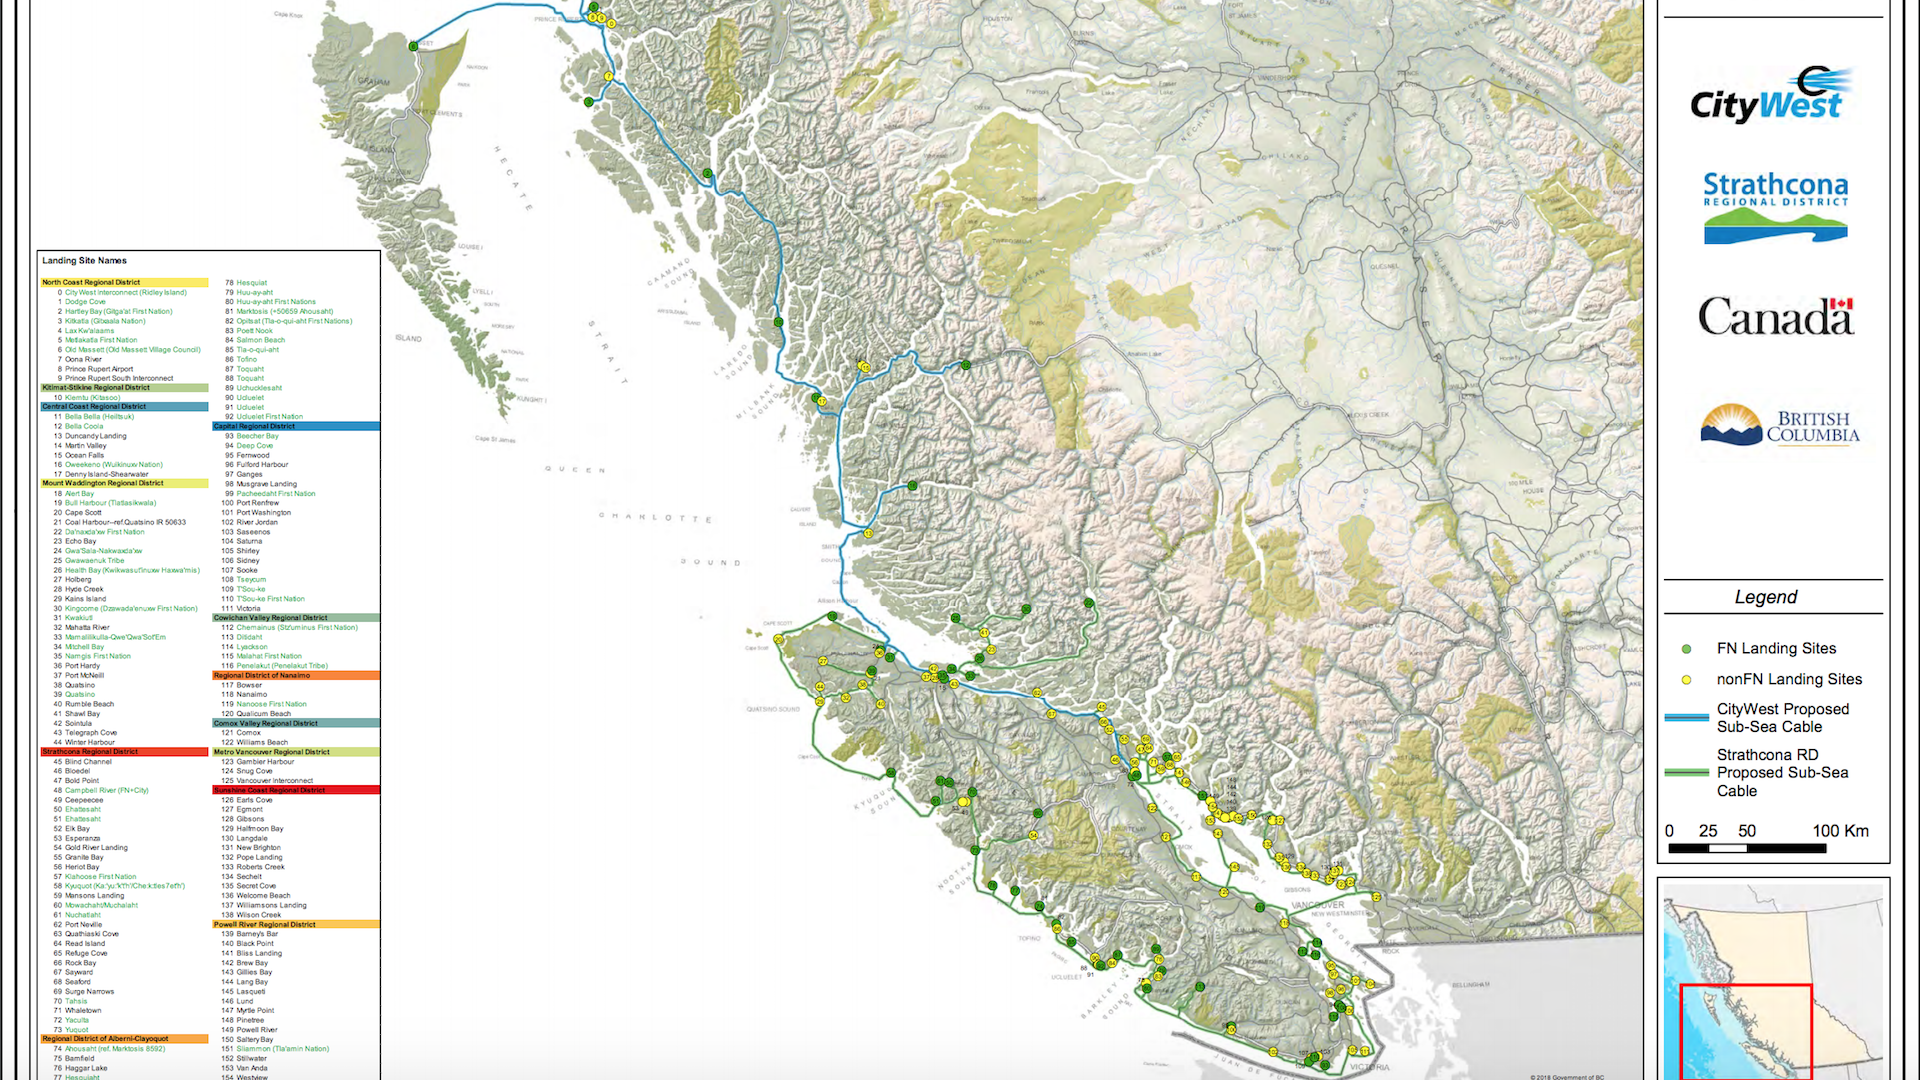 Connected Coast should include Galiano and Mayne